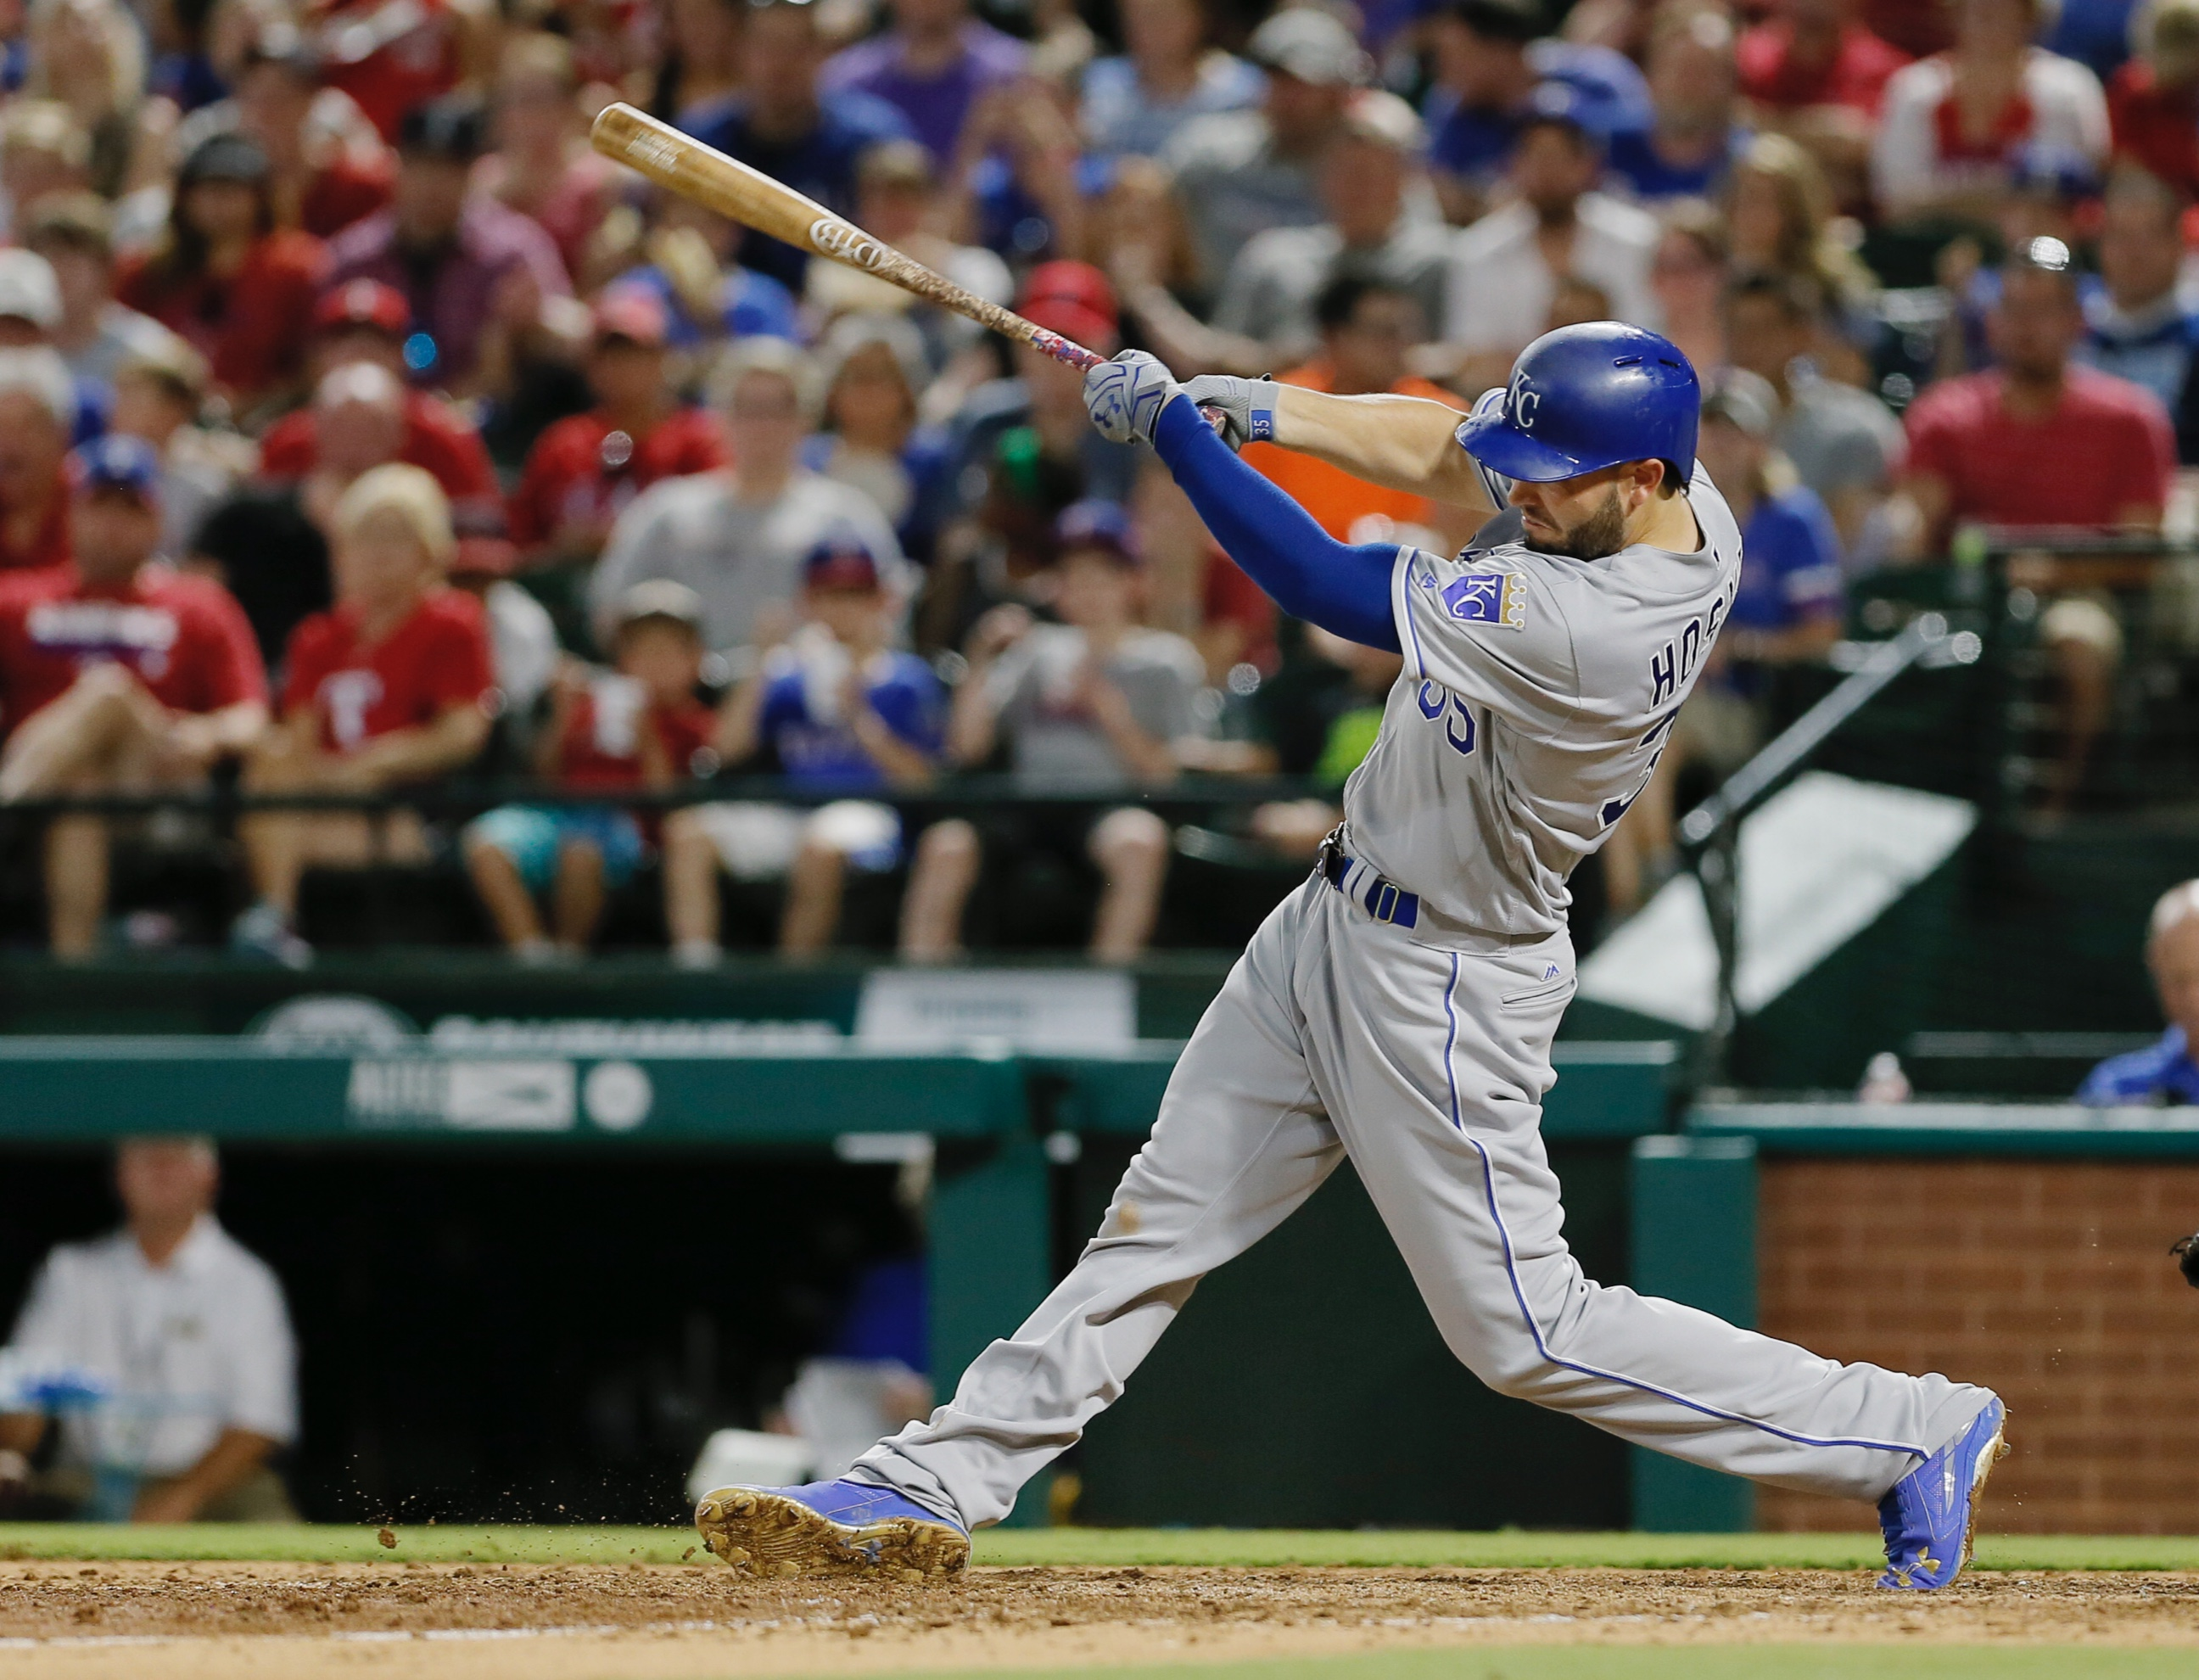 Kansas City Royals' Eric Hosmer swings for a two-run home run during the sixth inning of a baseball game against the Texas Rangers on Friday, July 29, 2016, in Arlington, Texas. (AP Photo/Brandon Wade)